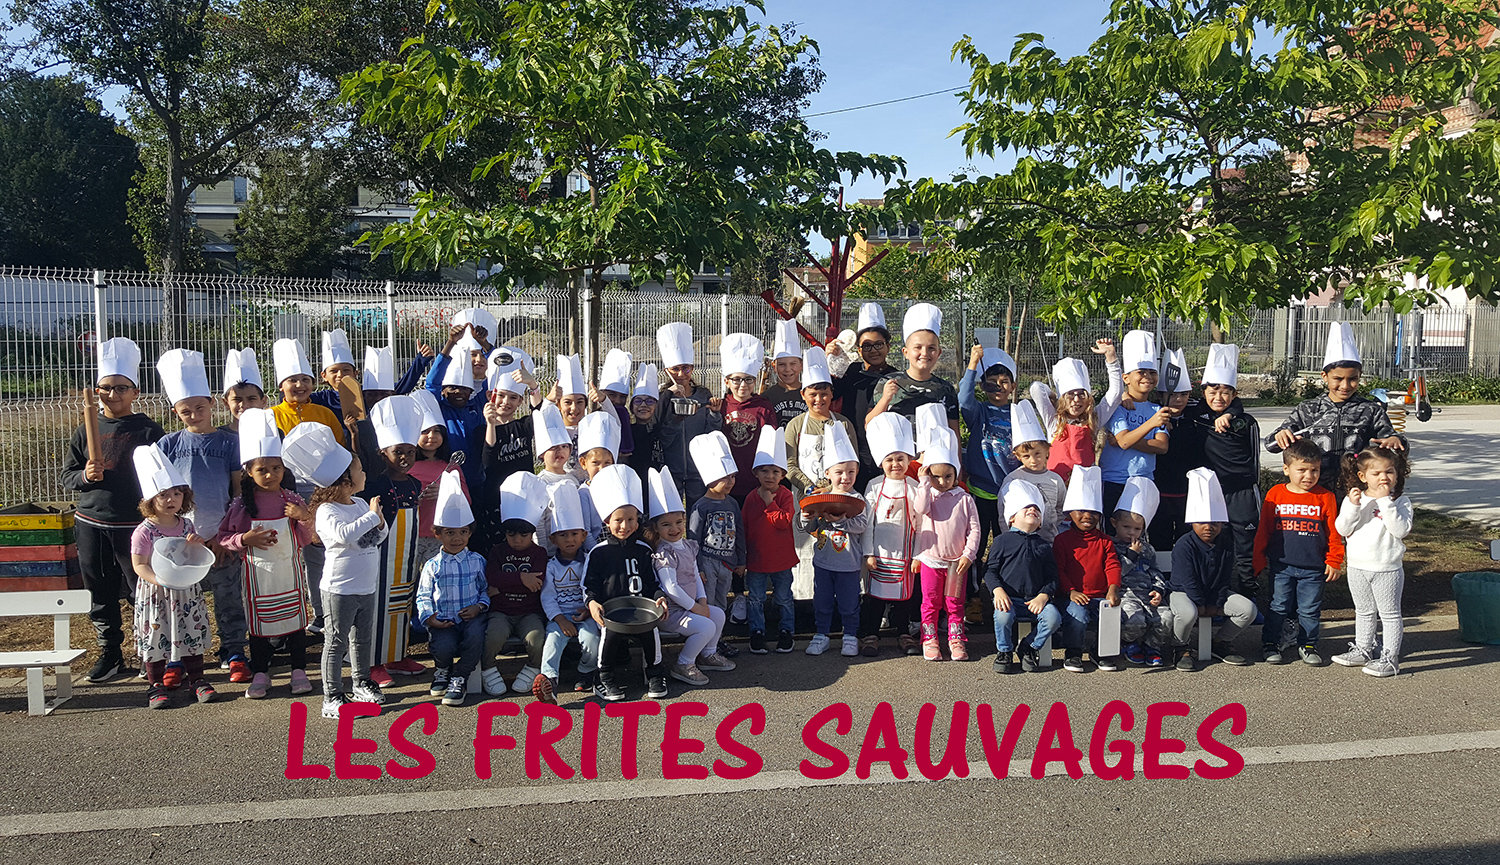 Les Frites Sauvages